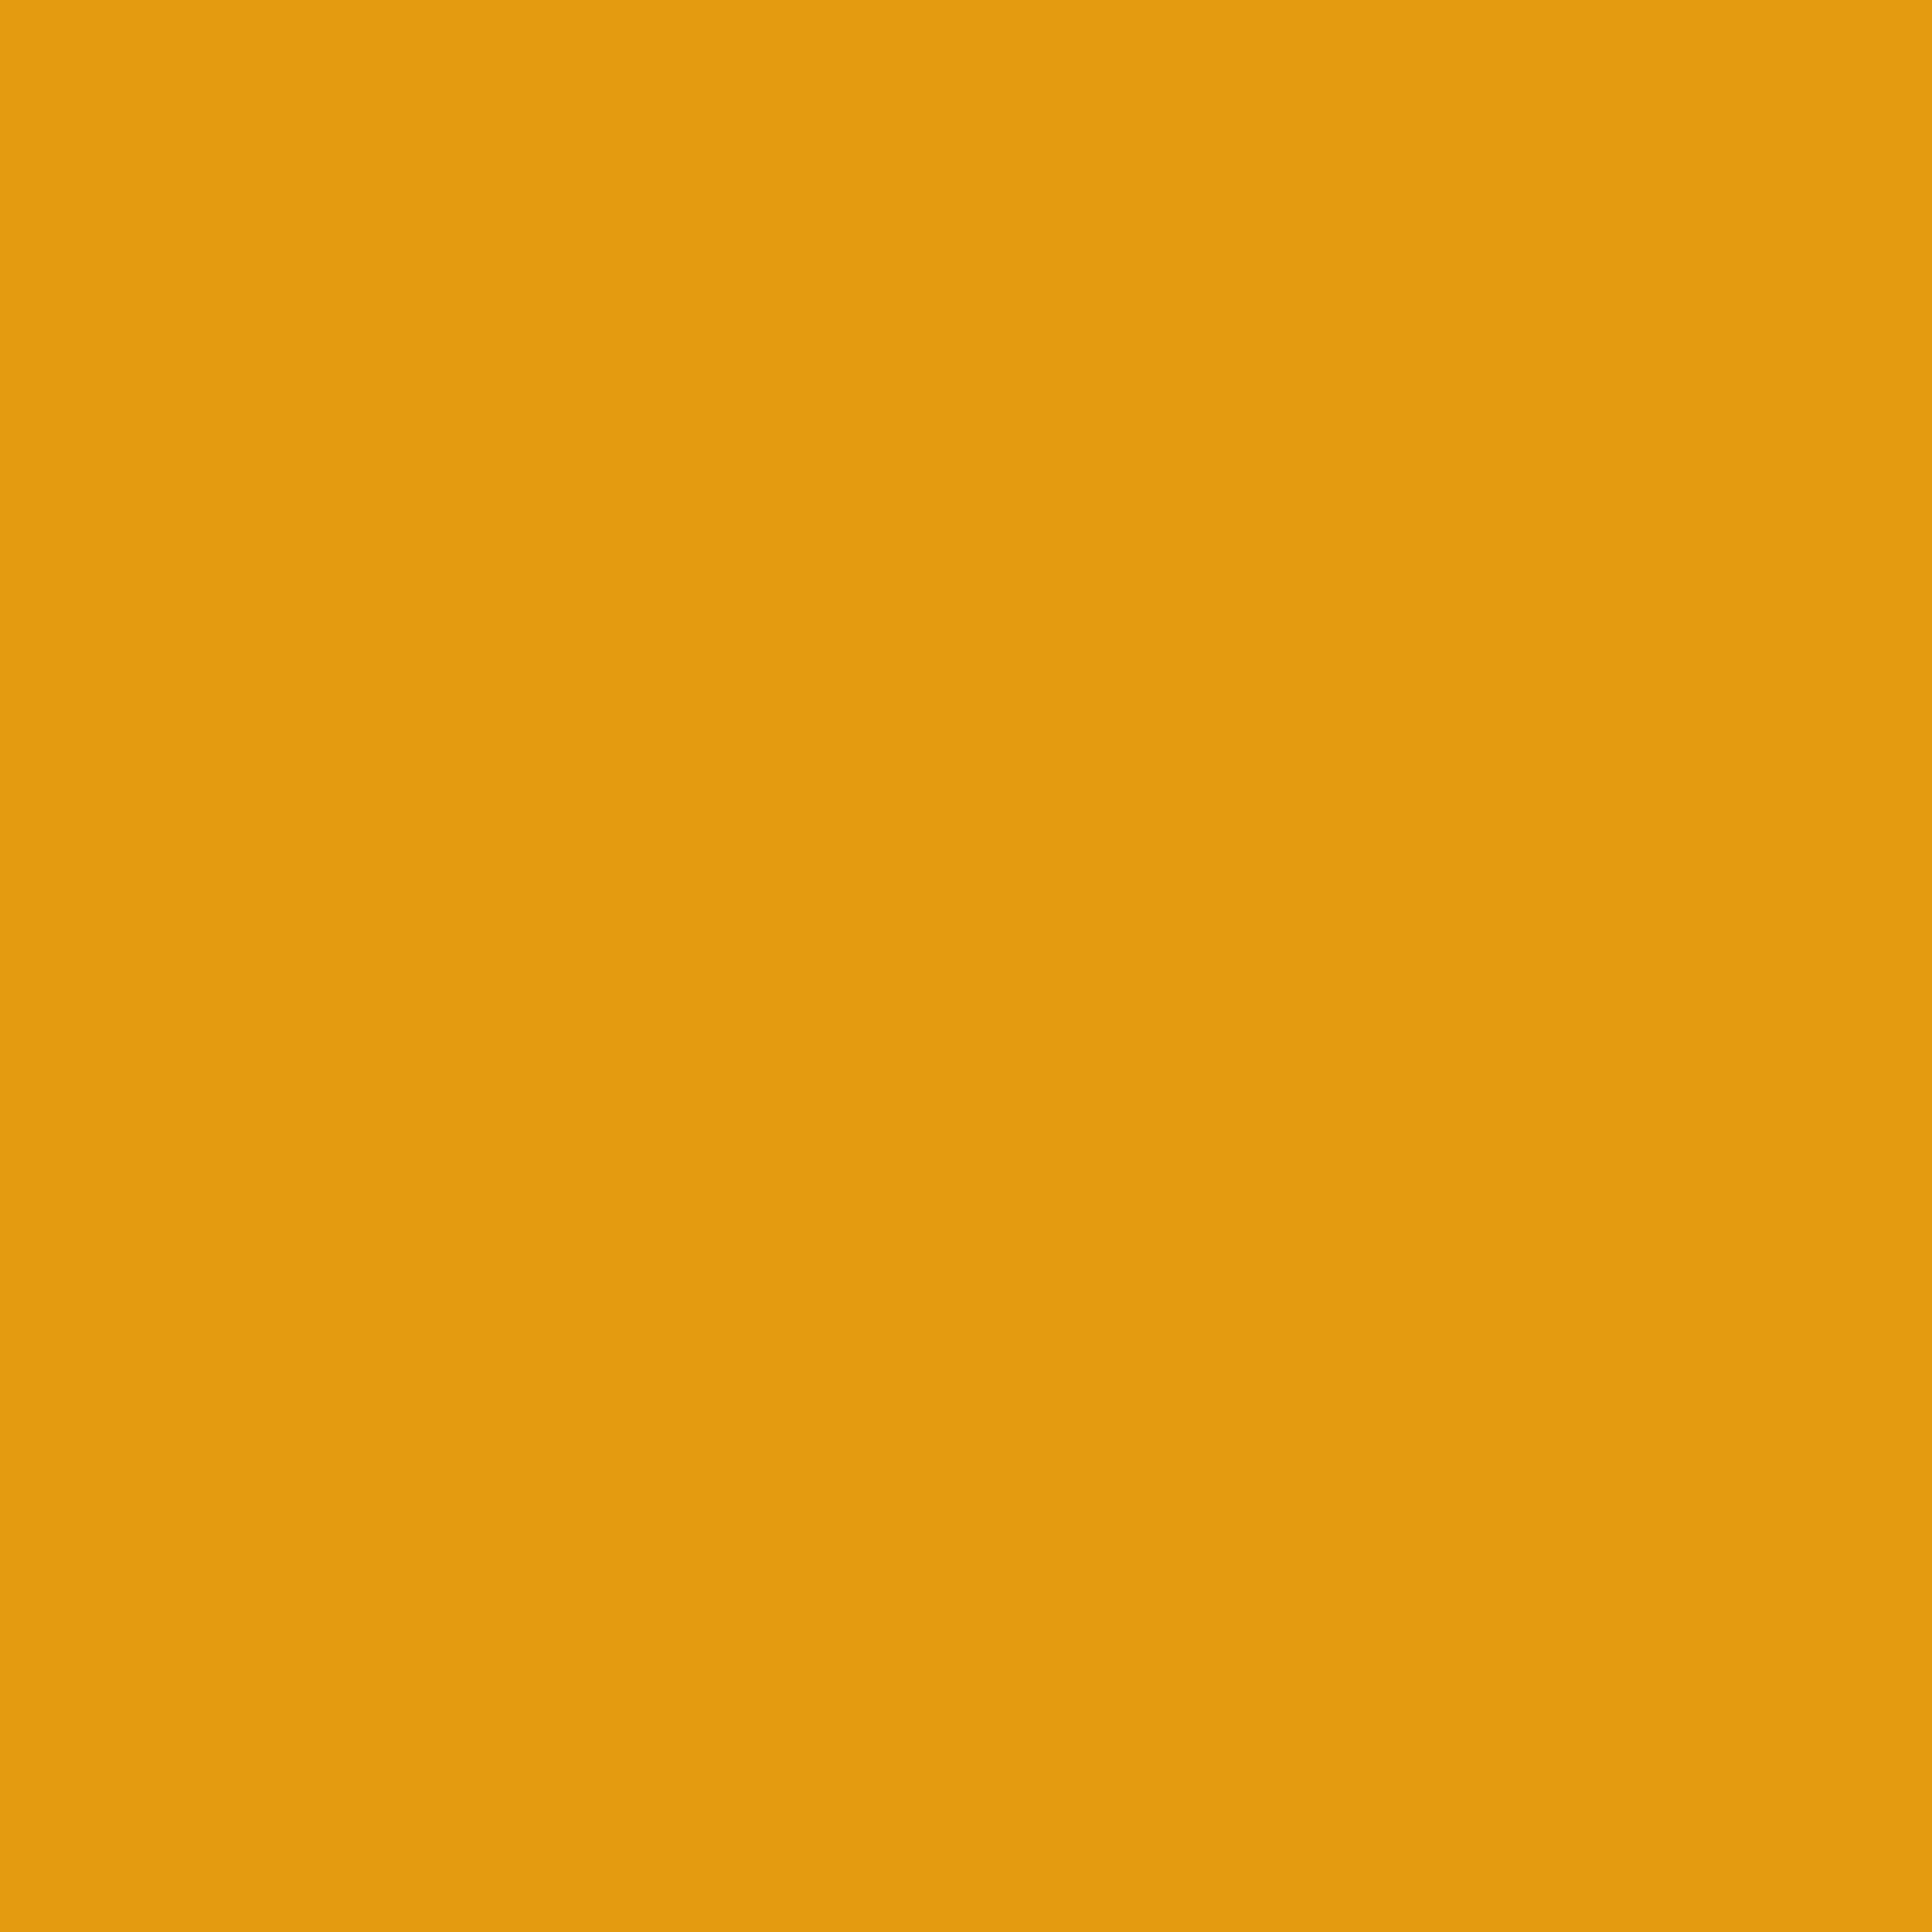 3600x3600 Gamboge Solid Color Background